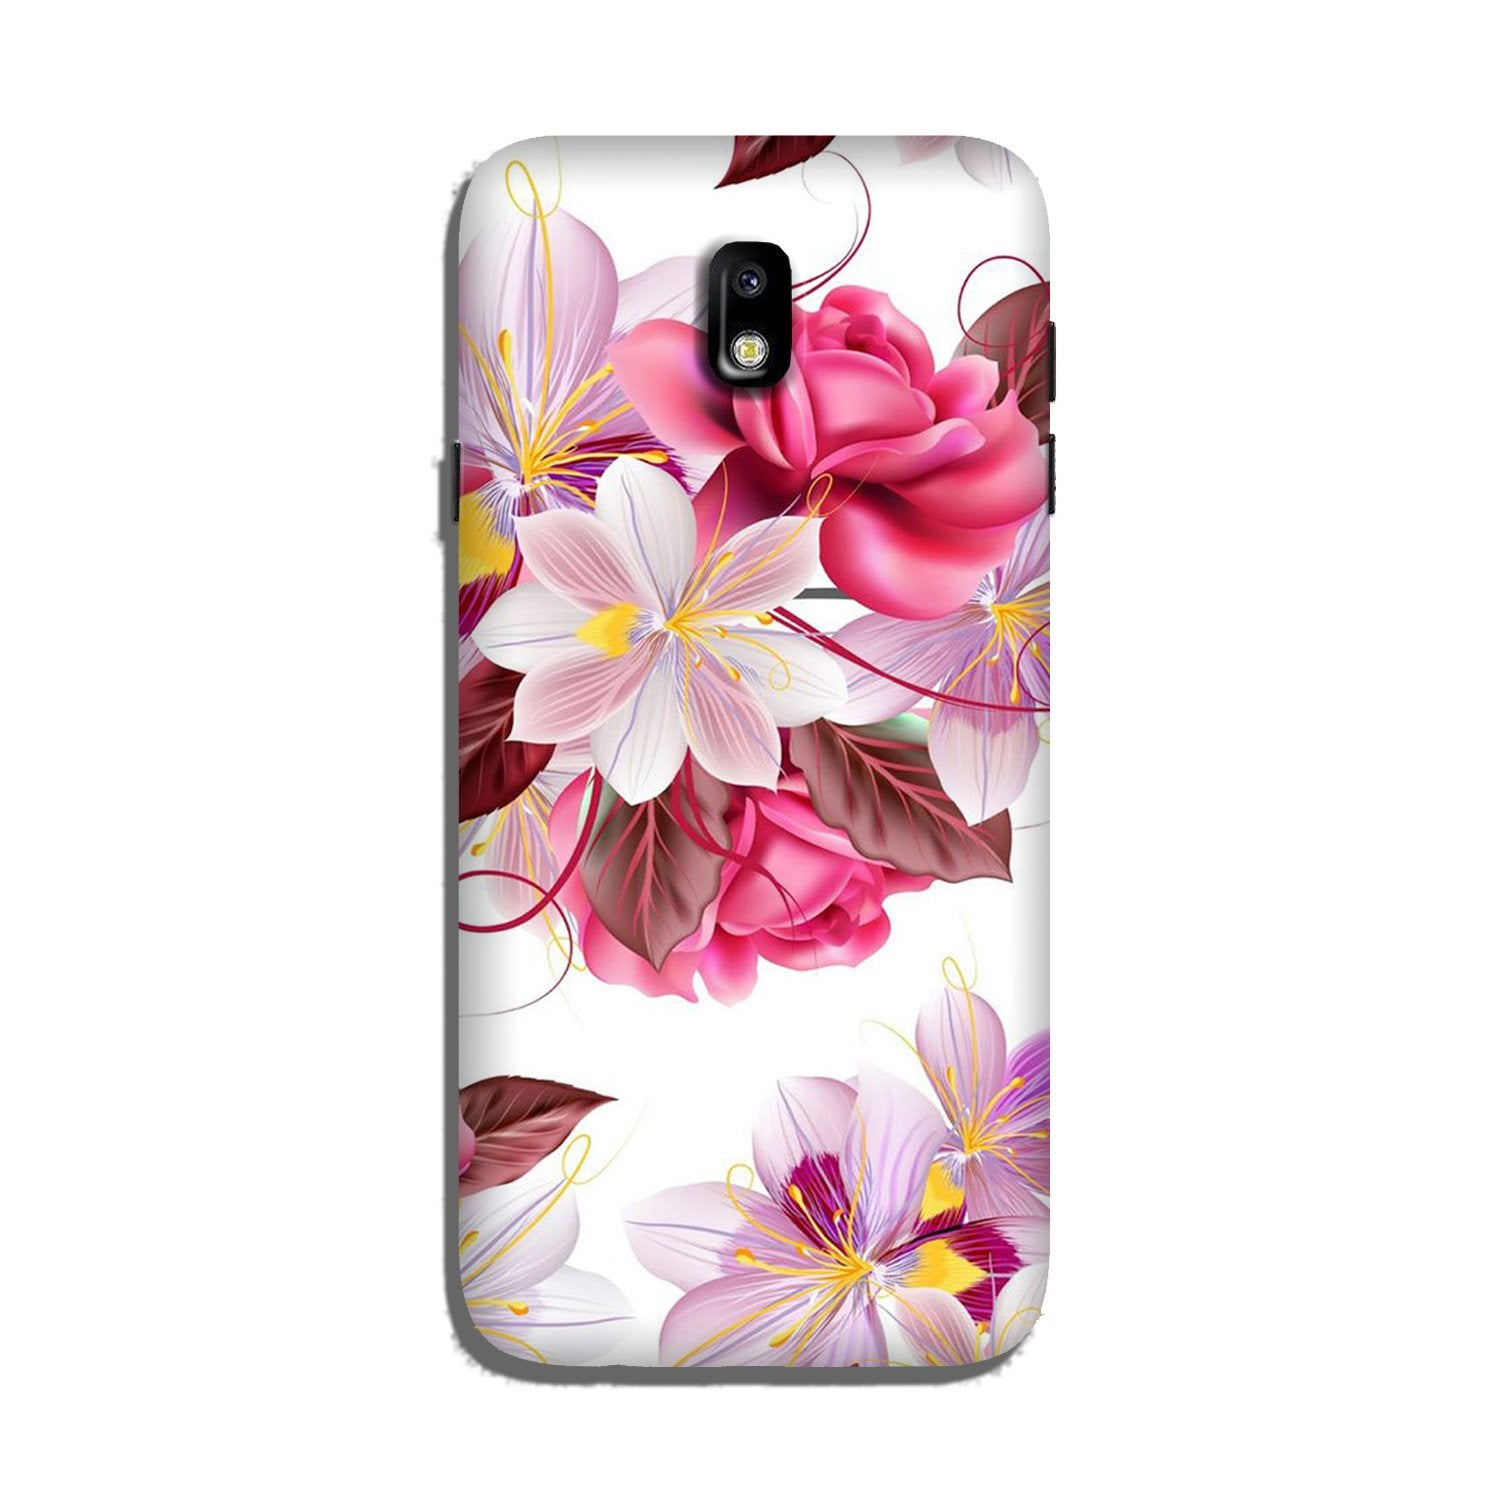 Beautiful flowers Case for Galaxy J5 Pro